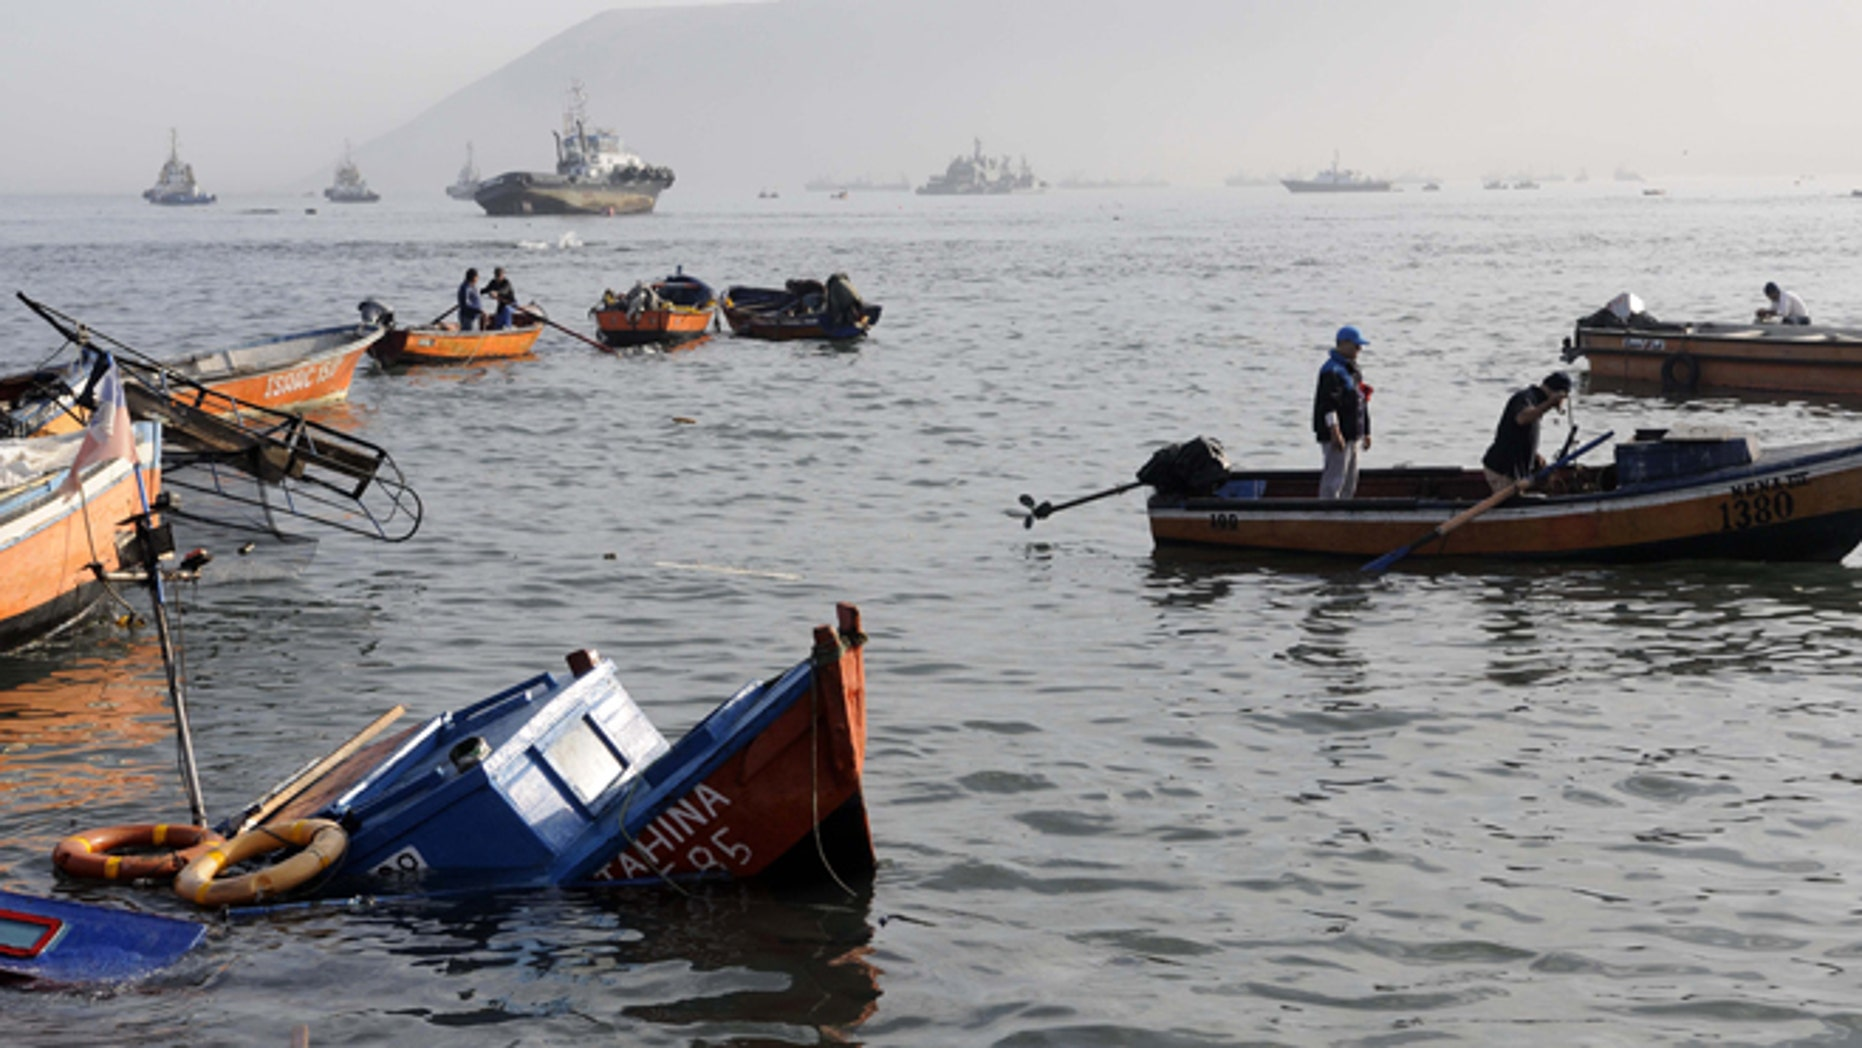 Fishing boats lie damaged by a small tsunami, in the northern town of Iquique, Chile, after magnitude 8.2 earthqauke struck the northen coast of Chile, Wednesday, April 2, 2014. Authorities lifted tsunami warnings for Chiles long coastline early Wednesday. Six people were crushed to death or suffered fatal heart attacks, a remarkably low toll for such a powerful shift in the Earths crust. (AP Photo/Cristian Viveros) NO PUBLICAR EN CHILE